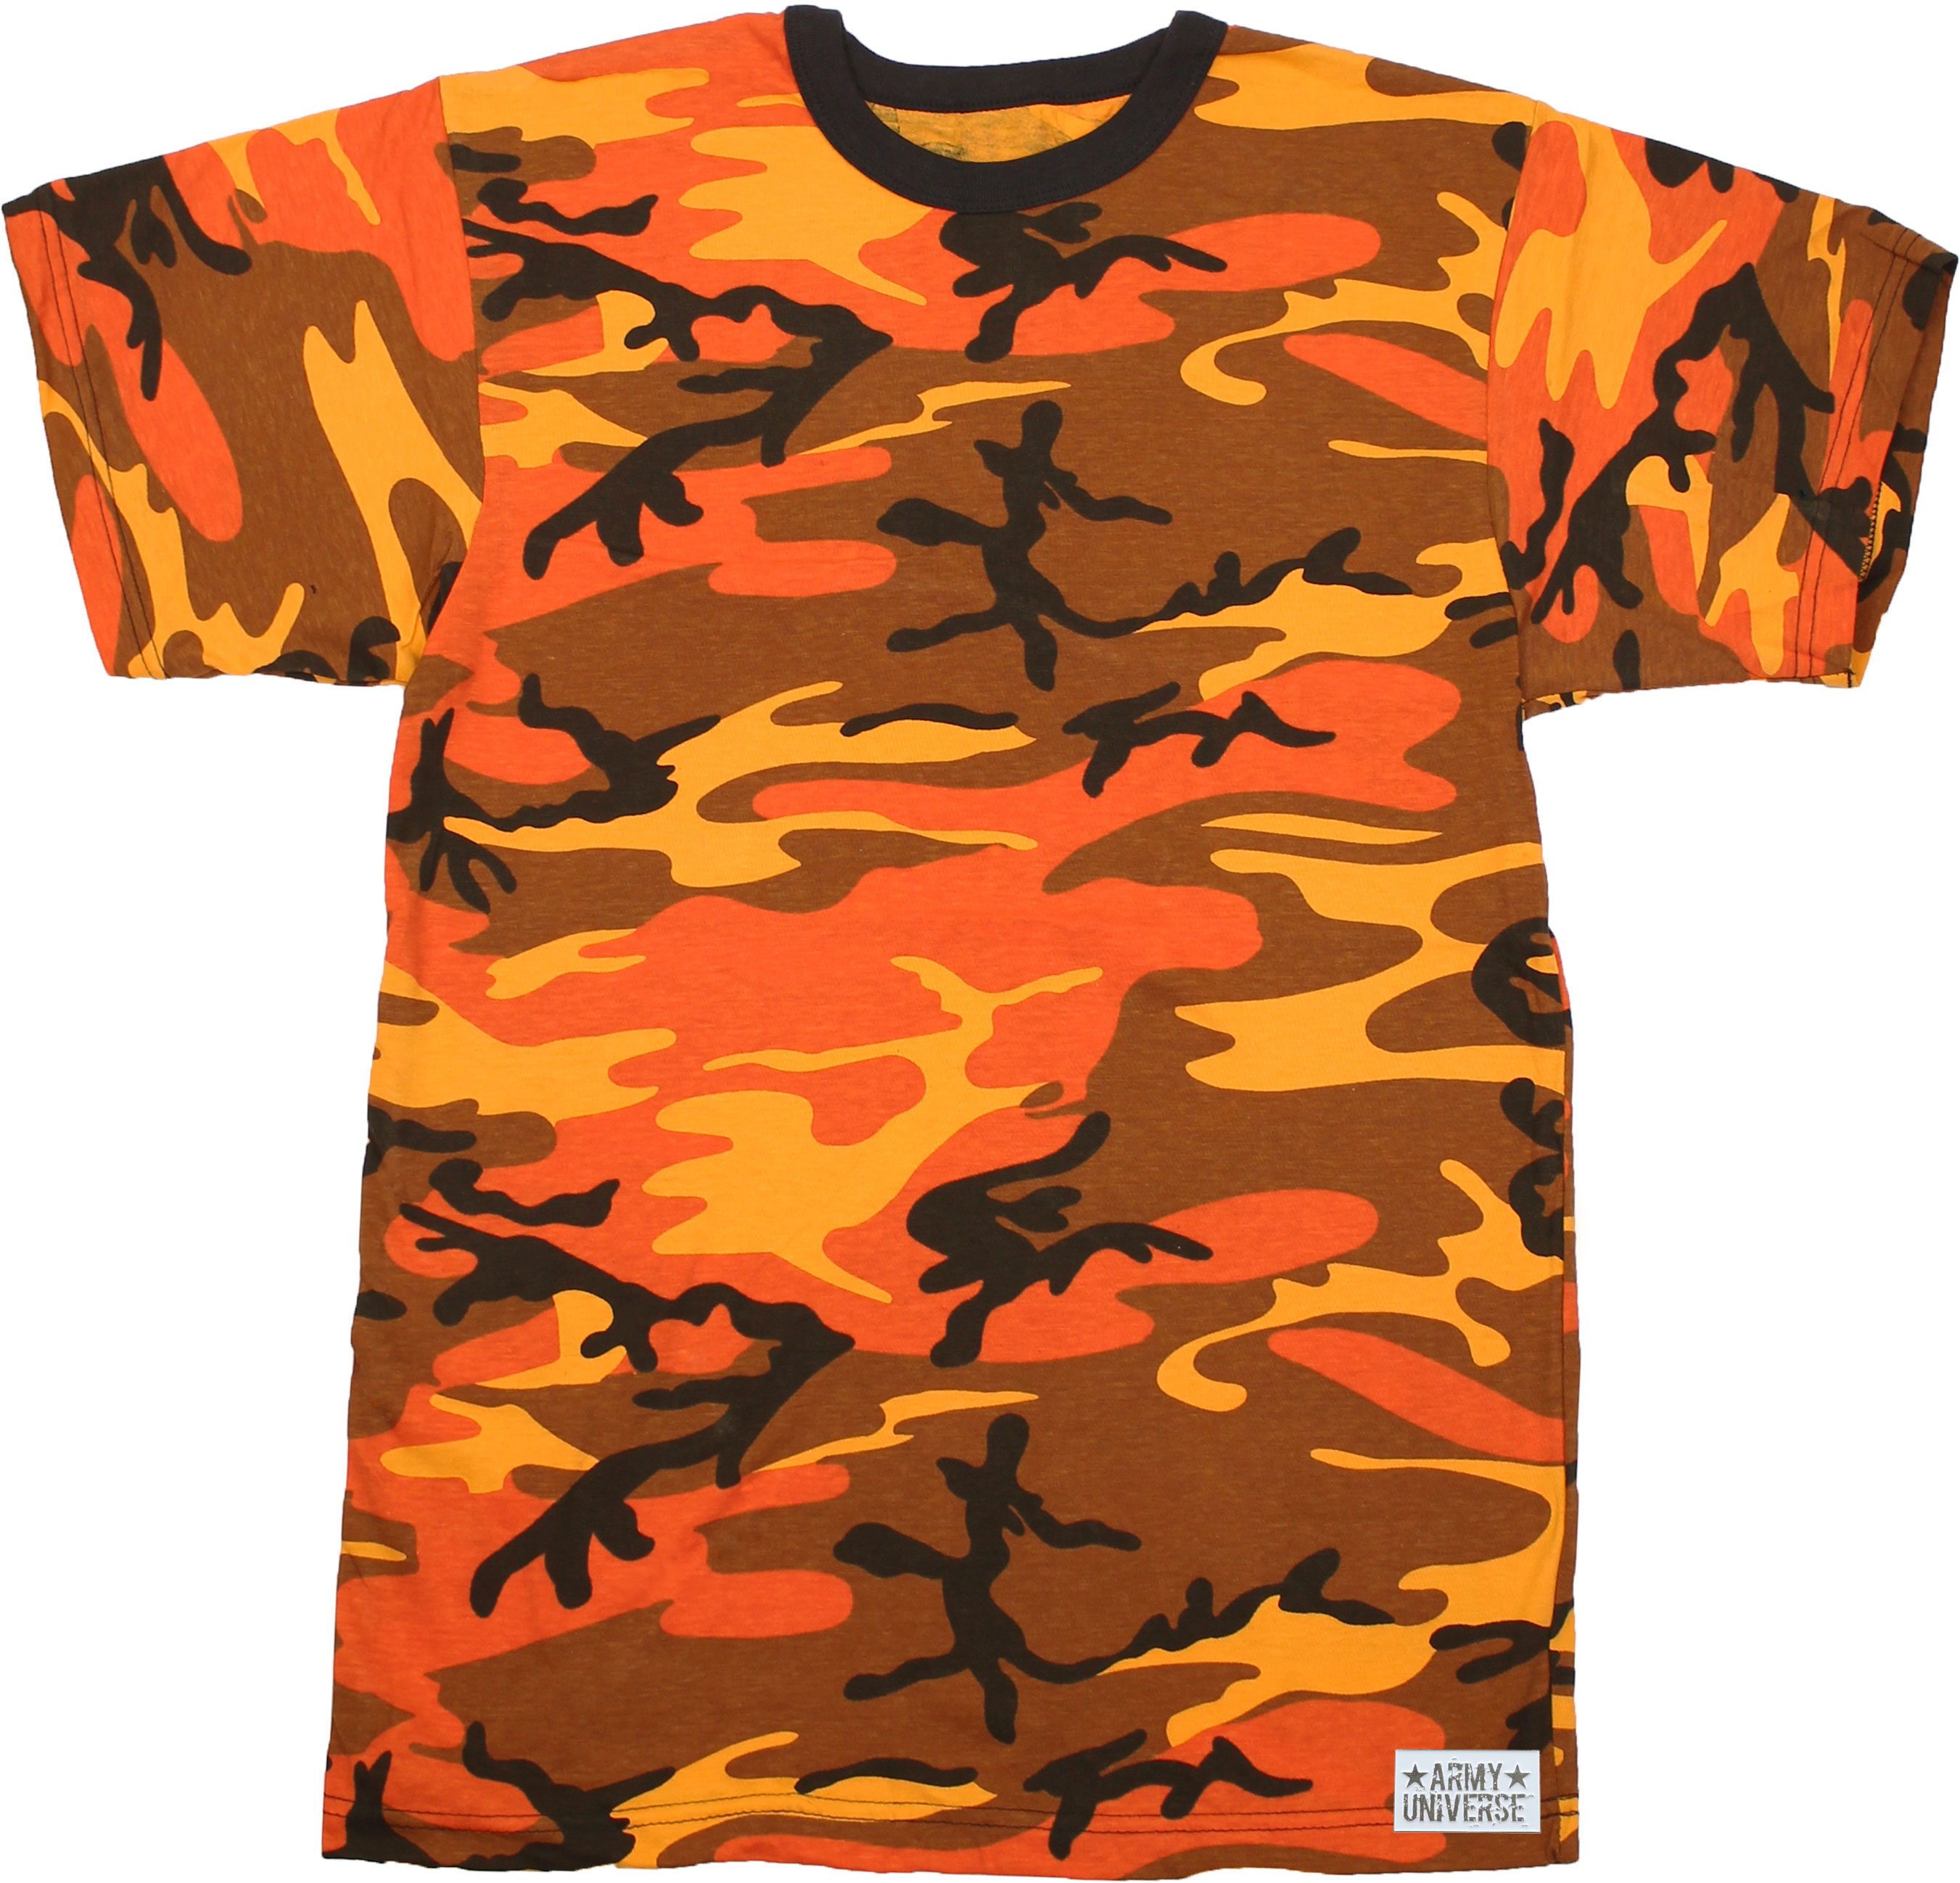 Army Universe - Orange Camouflage Short Sleeve T-Shirt with ARMY UNIVERSE  Pin - Size Small (33